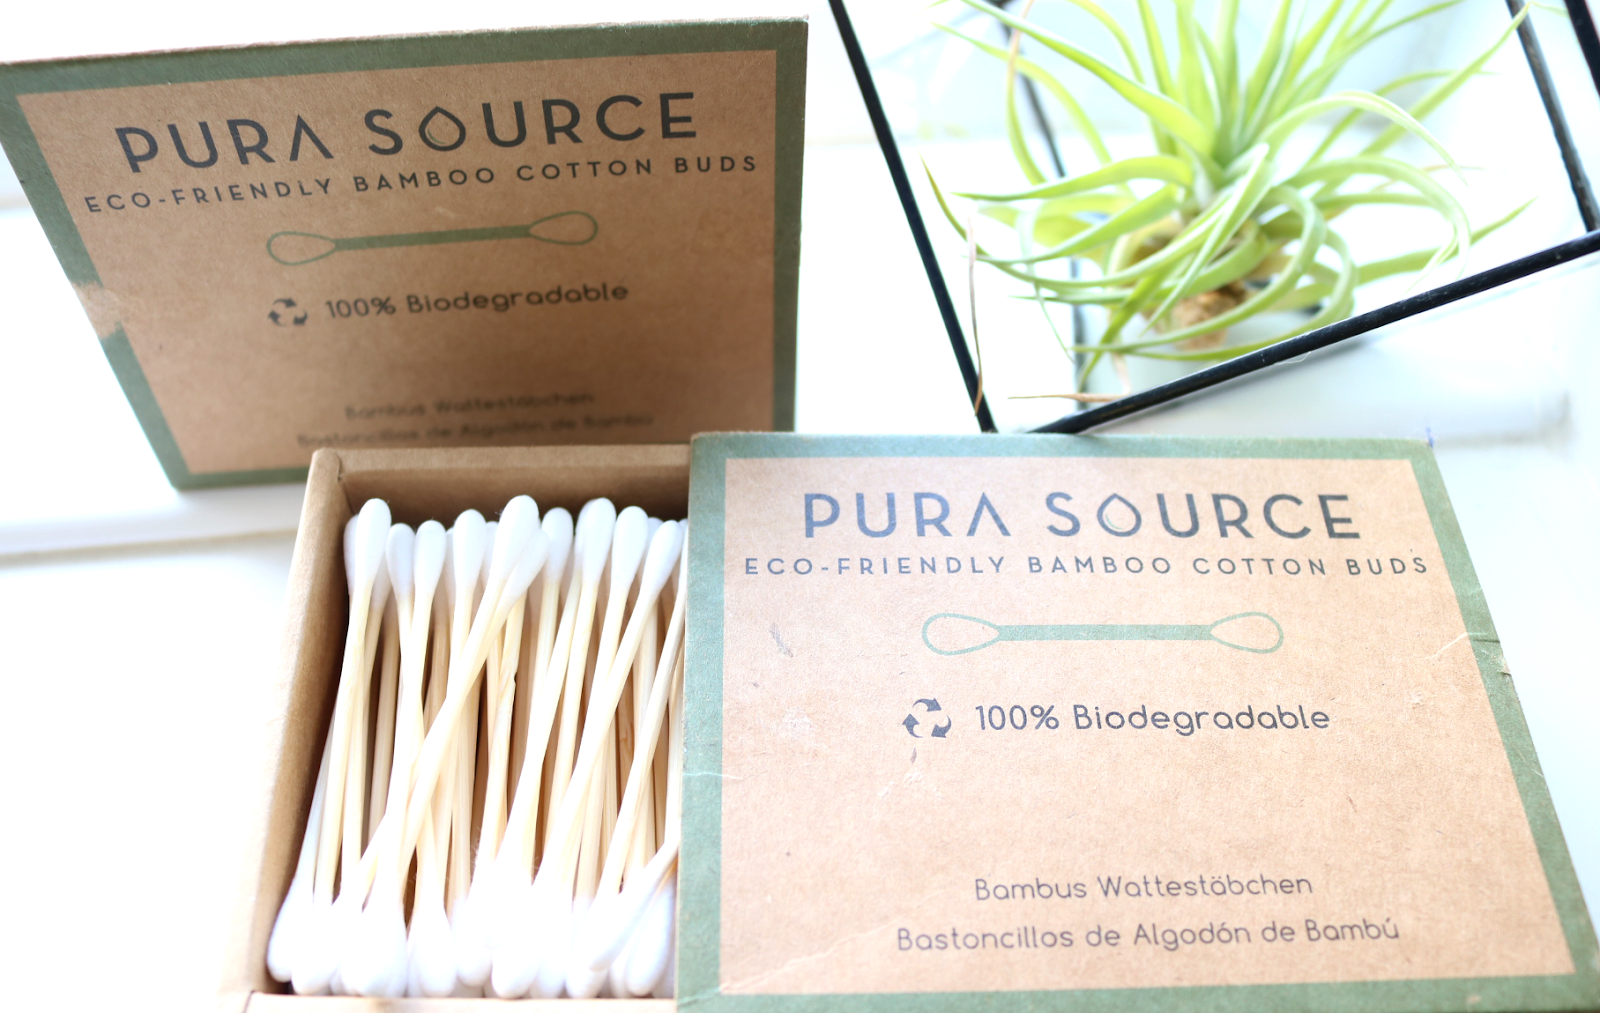 Pura Source Eco-Friendly Bamboo Cotton Buds